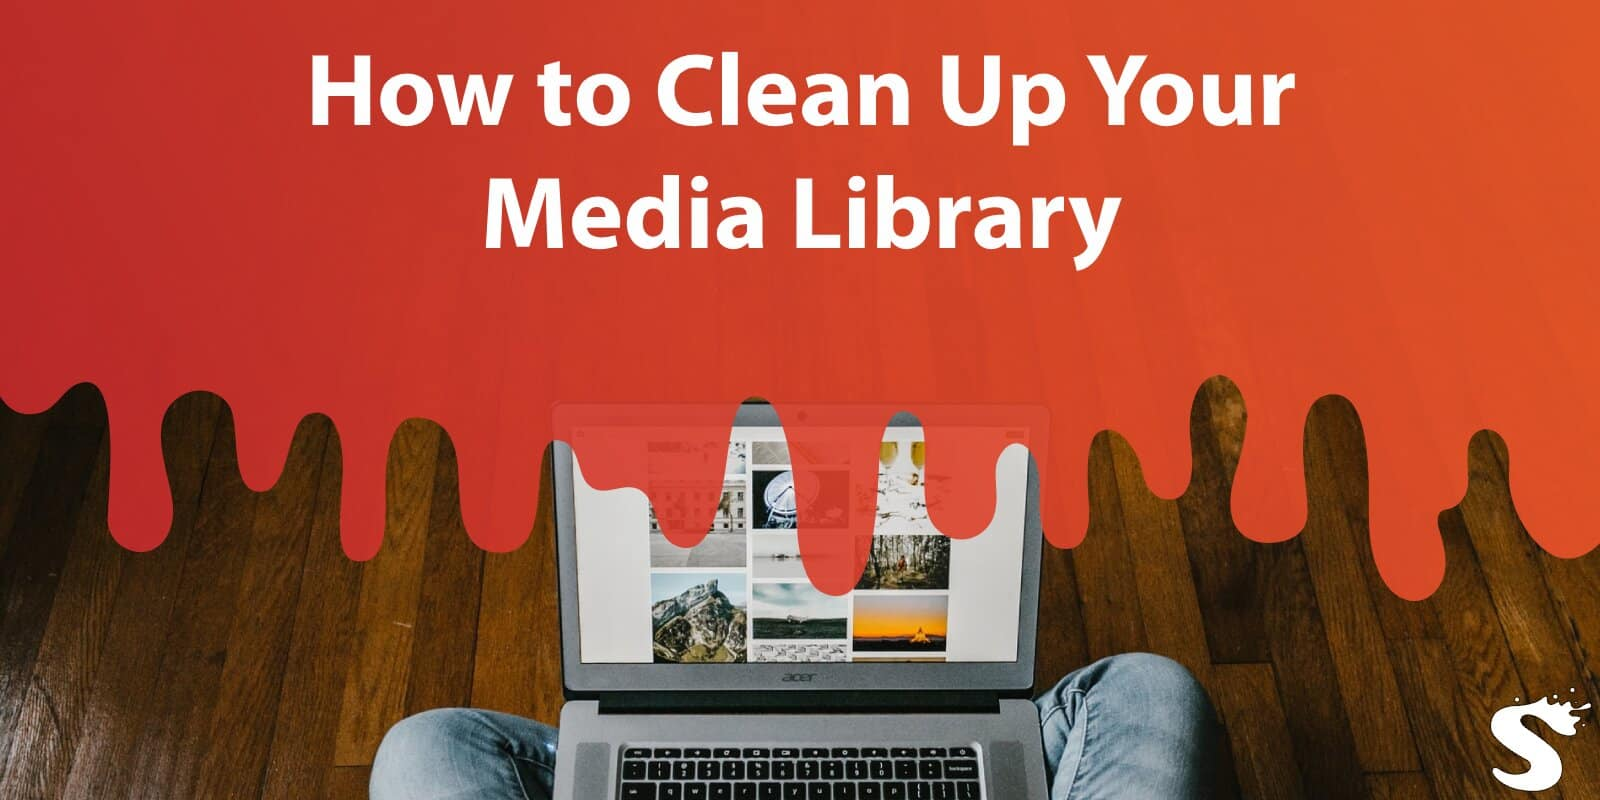 How to Clean Up Your Media Library